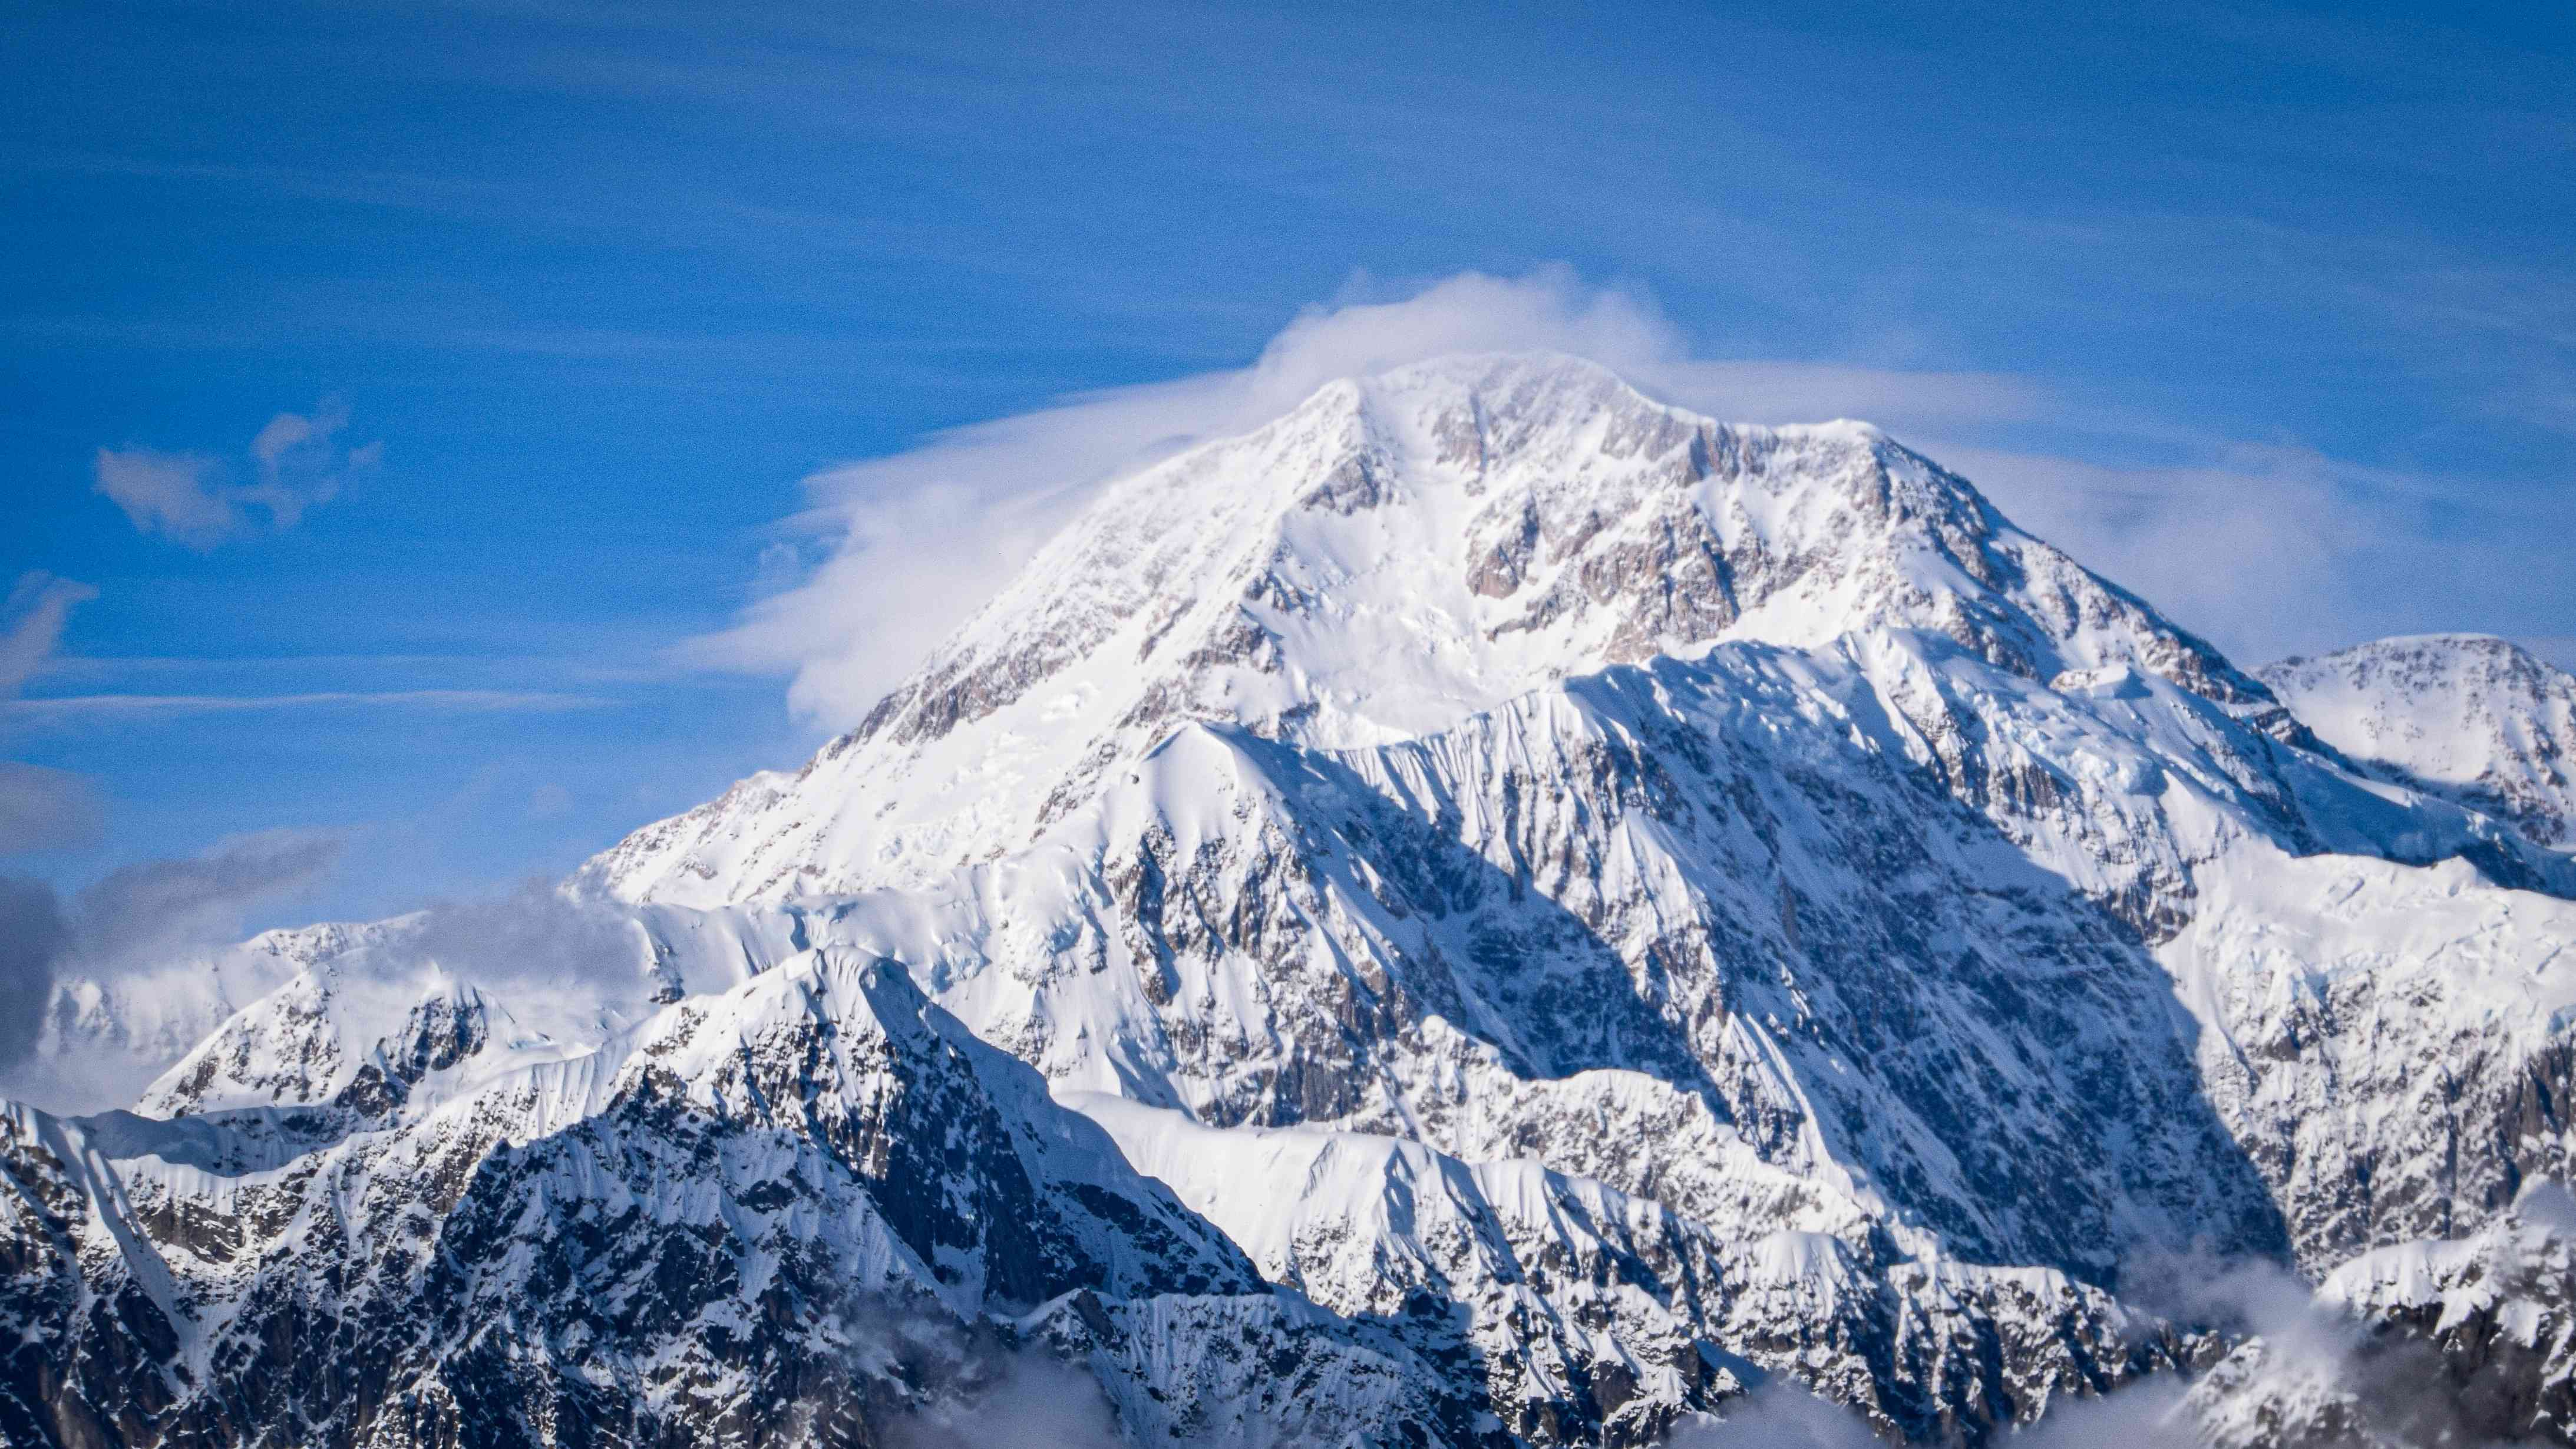 View of snow covered Mount Mckinley in Denali National Park